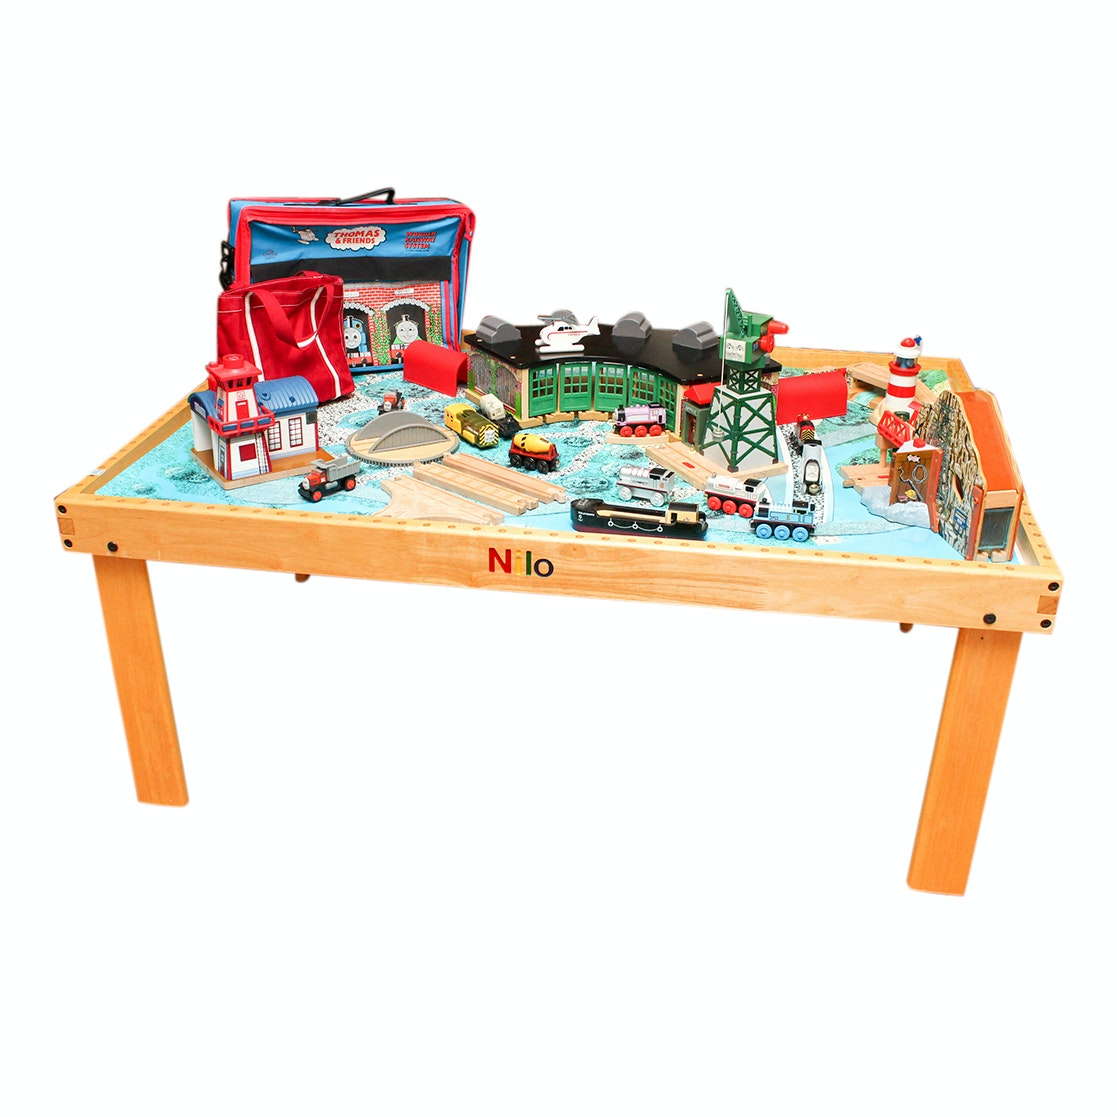 Nilo Wooden Train Table and Thomas \u0026 Friends Wooden Train Set ...  sc 1 st  EBTH.com & Nilo Wooden Train Table and Thomas \u0026 Friends Wooden Train Set : EBTH